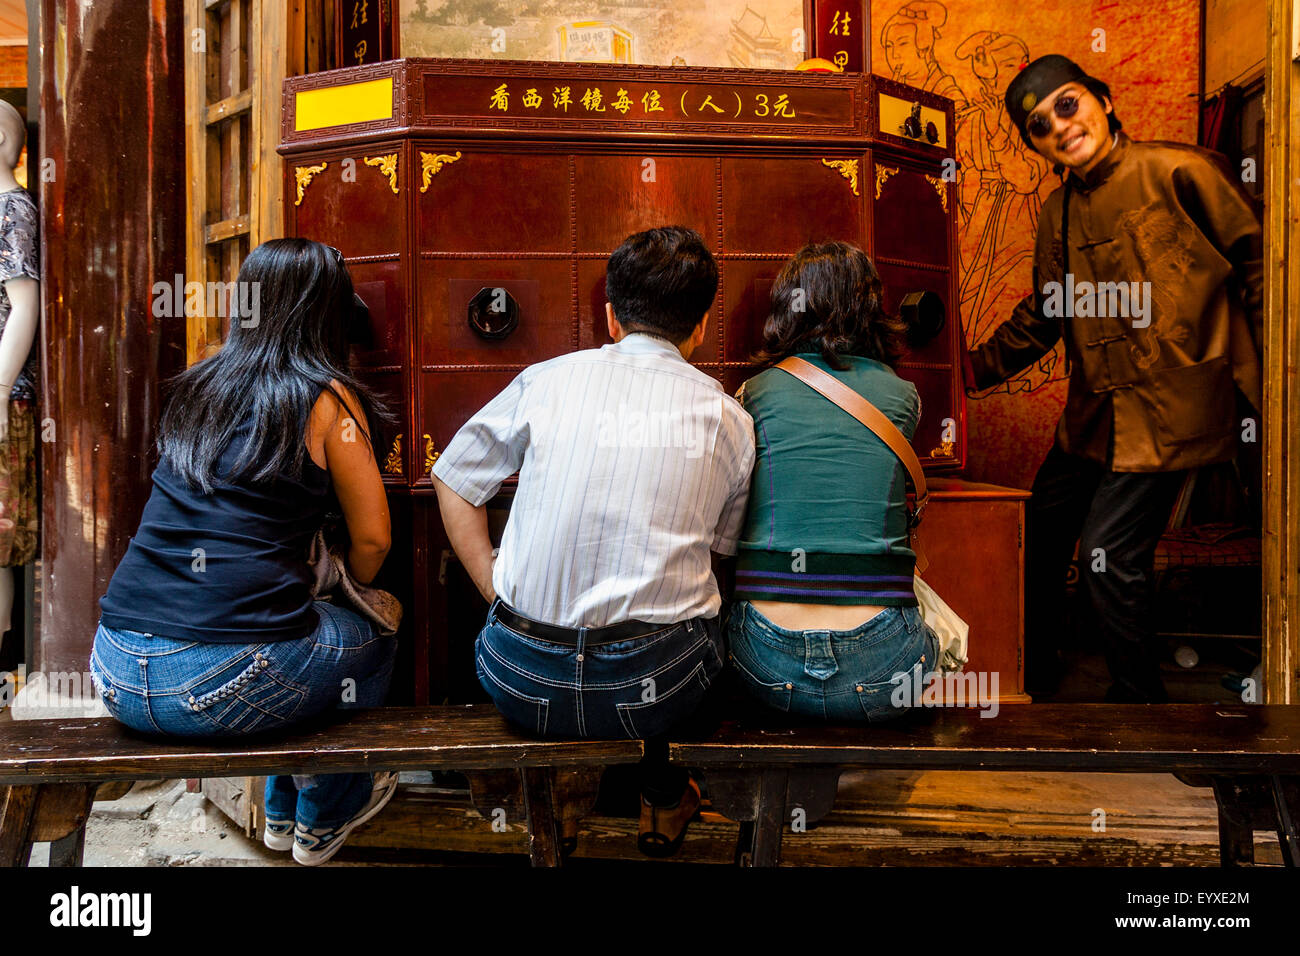 People Watch A Traditional Chinese Peep Show, Old Shanghai, Shanghai, China  - Stock